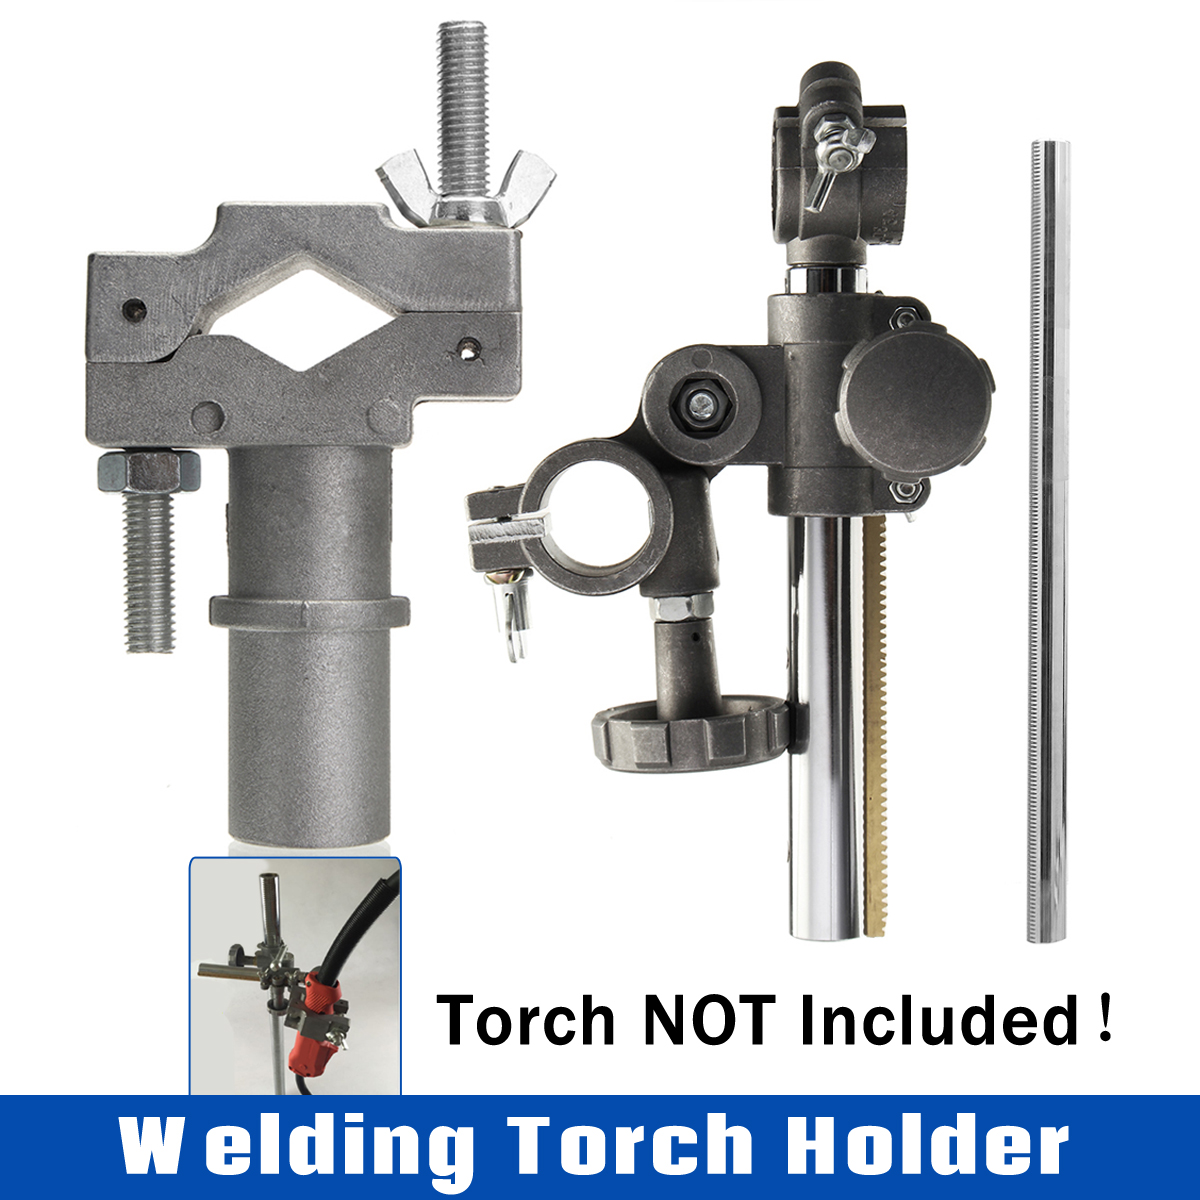 Mini Welding Torch Holder Support Electrode Holder Clamp Mountings Stand for MIG MAG CO2 TIG Welding Machine Welding Positioner welding positioner turntable accessories welding torch holder support torch clamp mountings stand torch holder